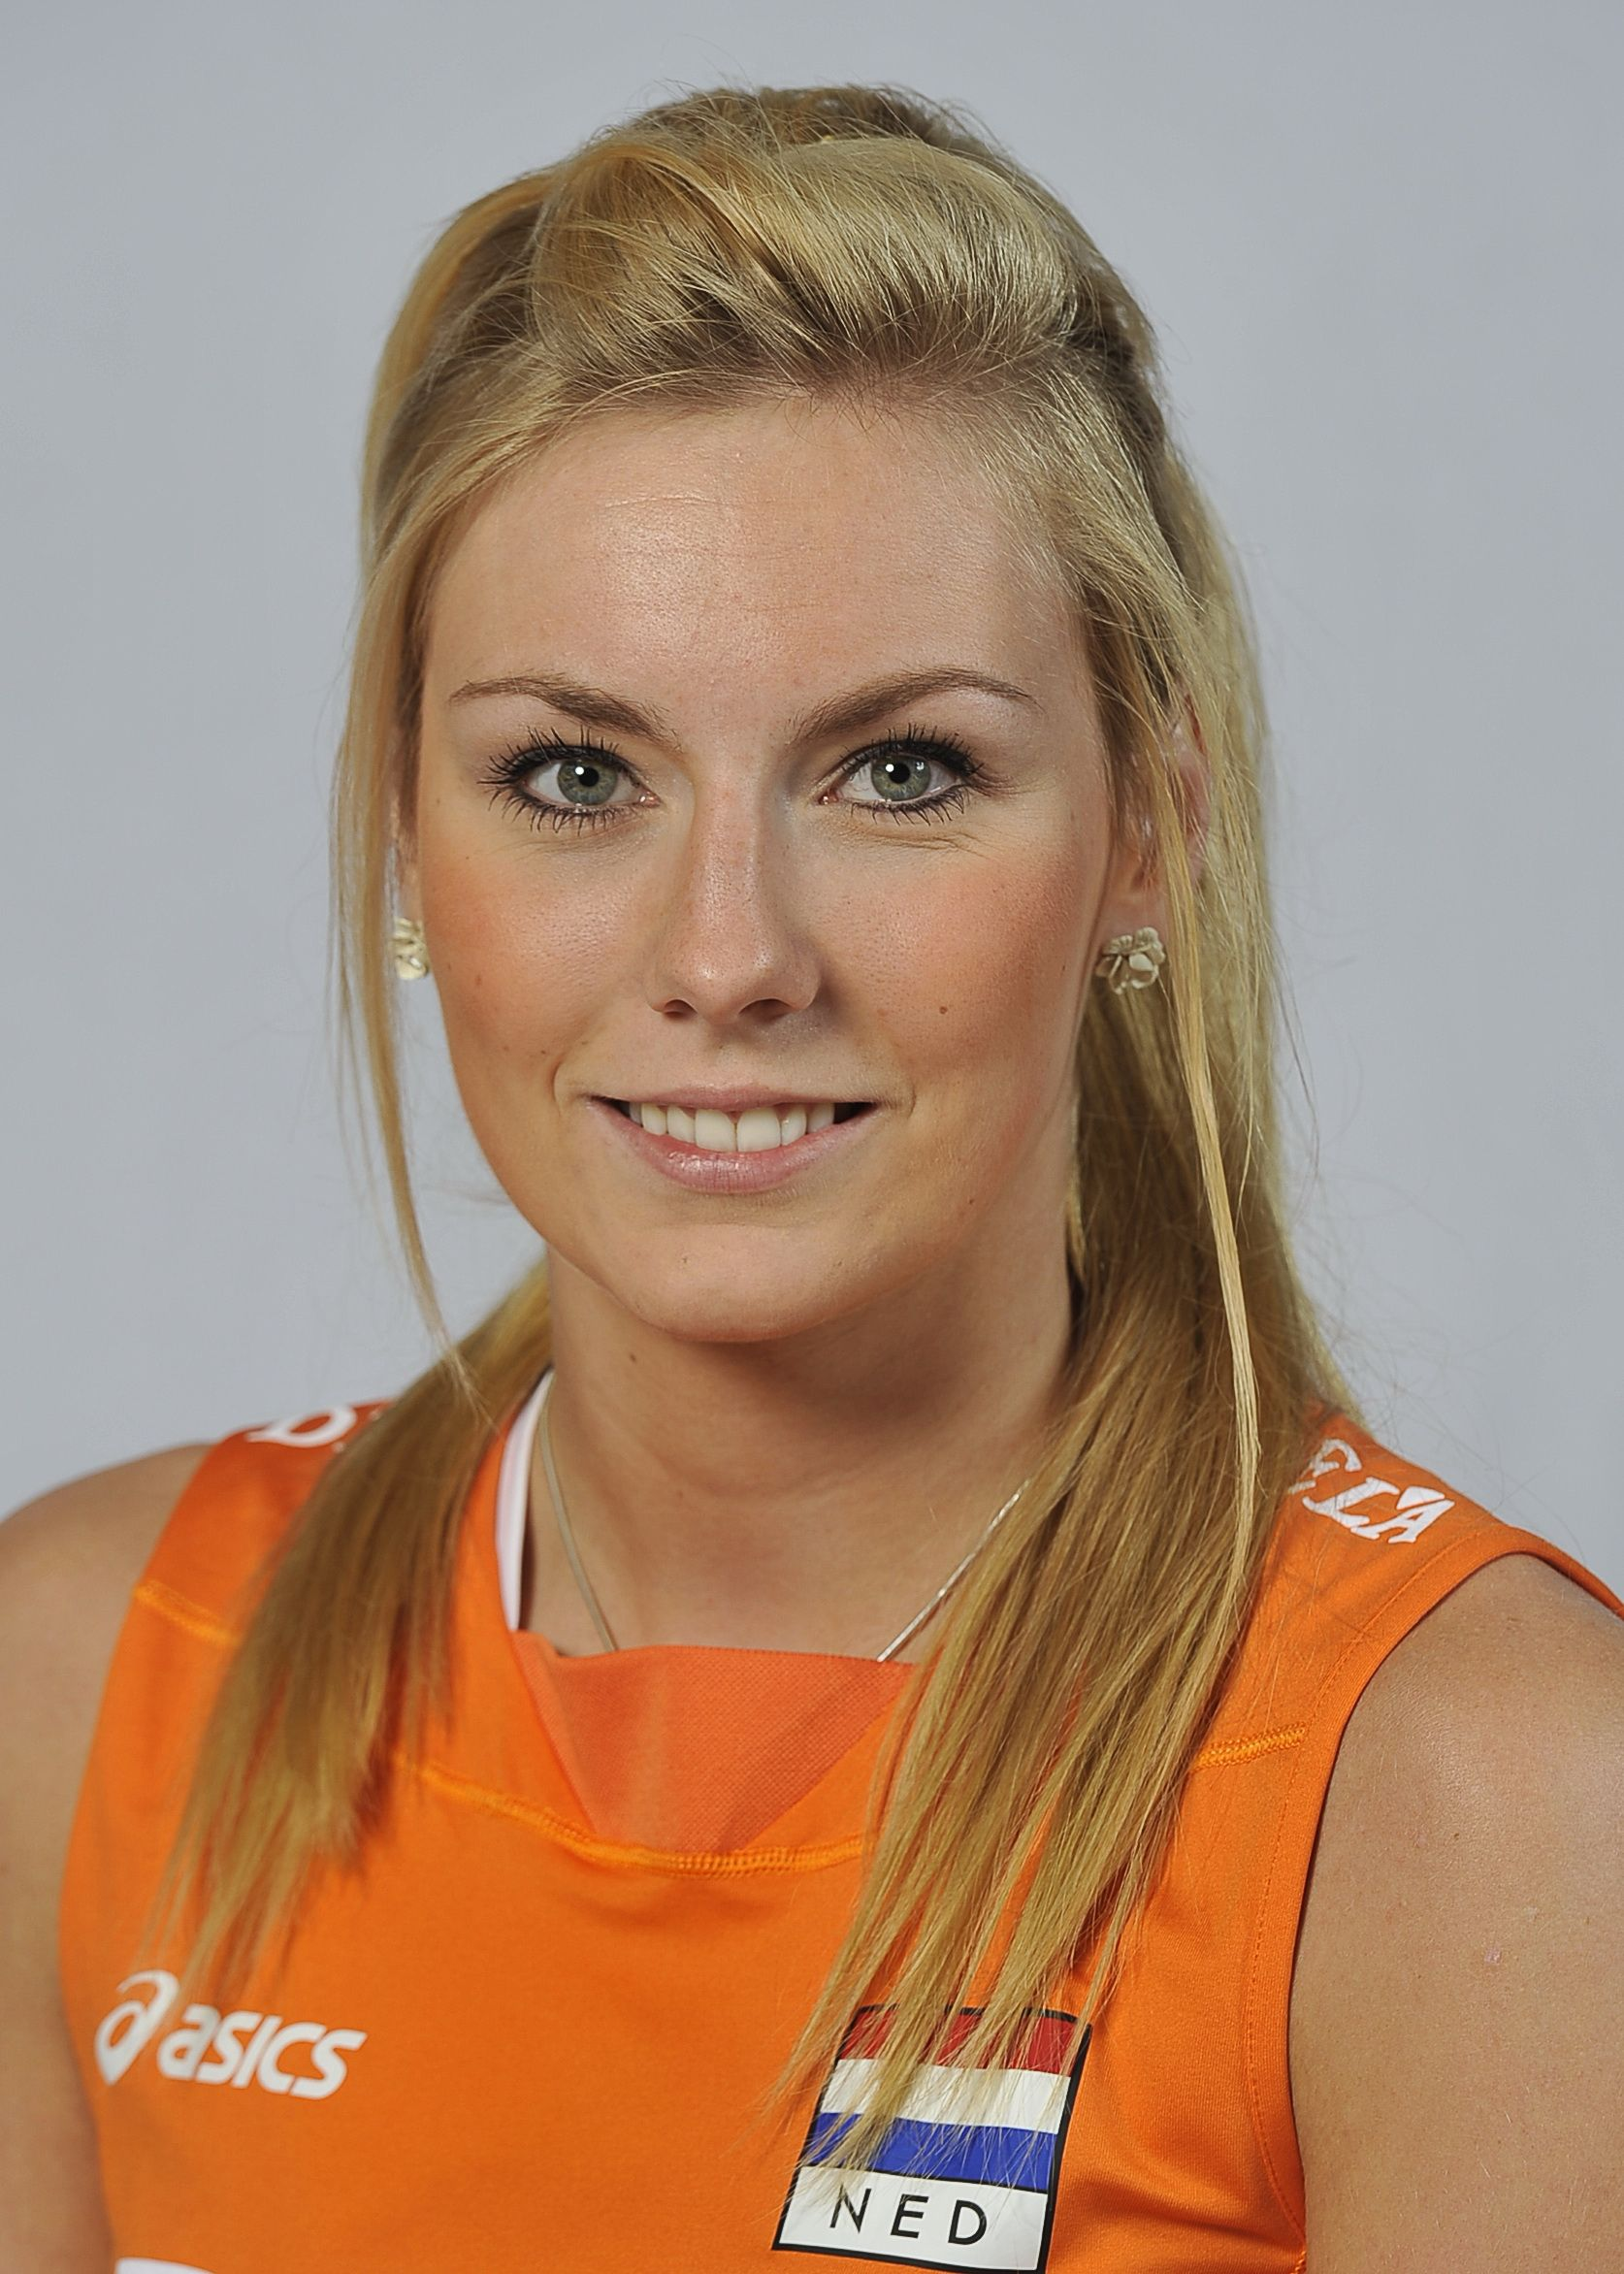 Laura Dijkema Is A Dutch Female Volleyball Player Of The Dutch National Female Team Women Volleyball Female Volleyball Players Dutch Women